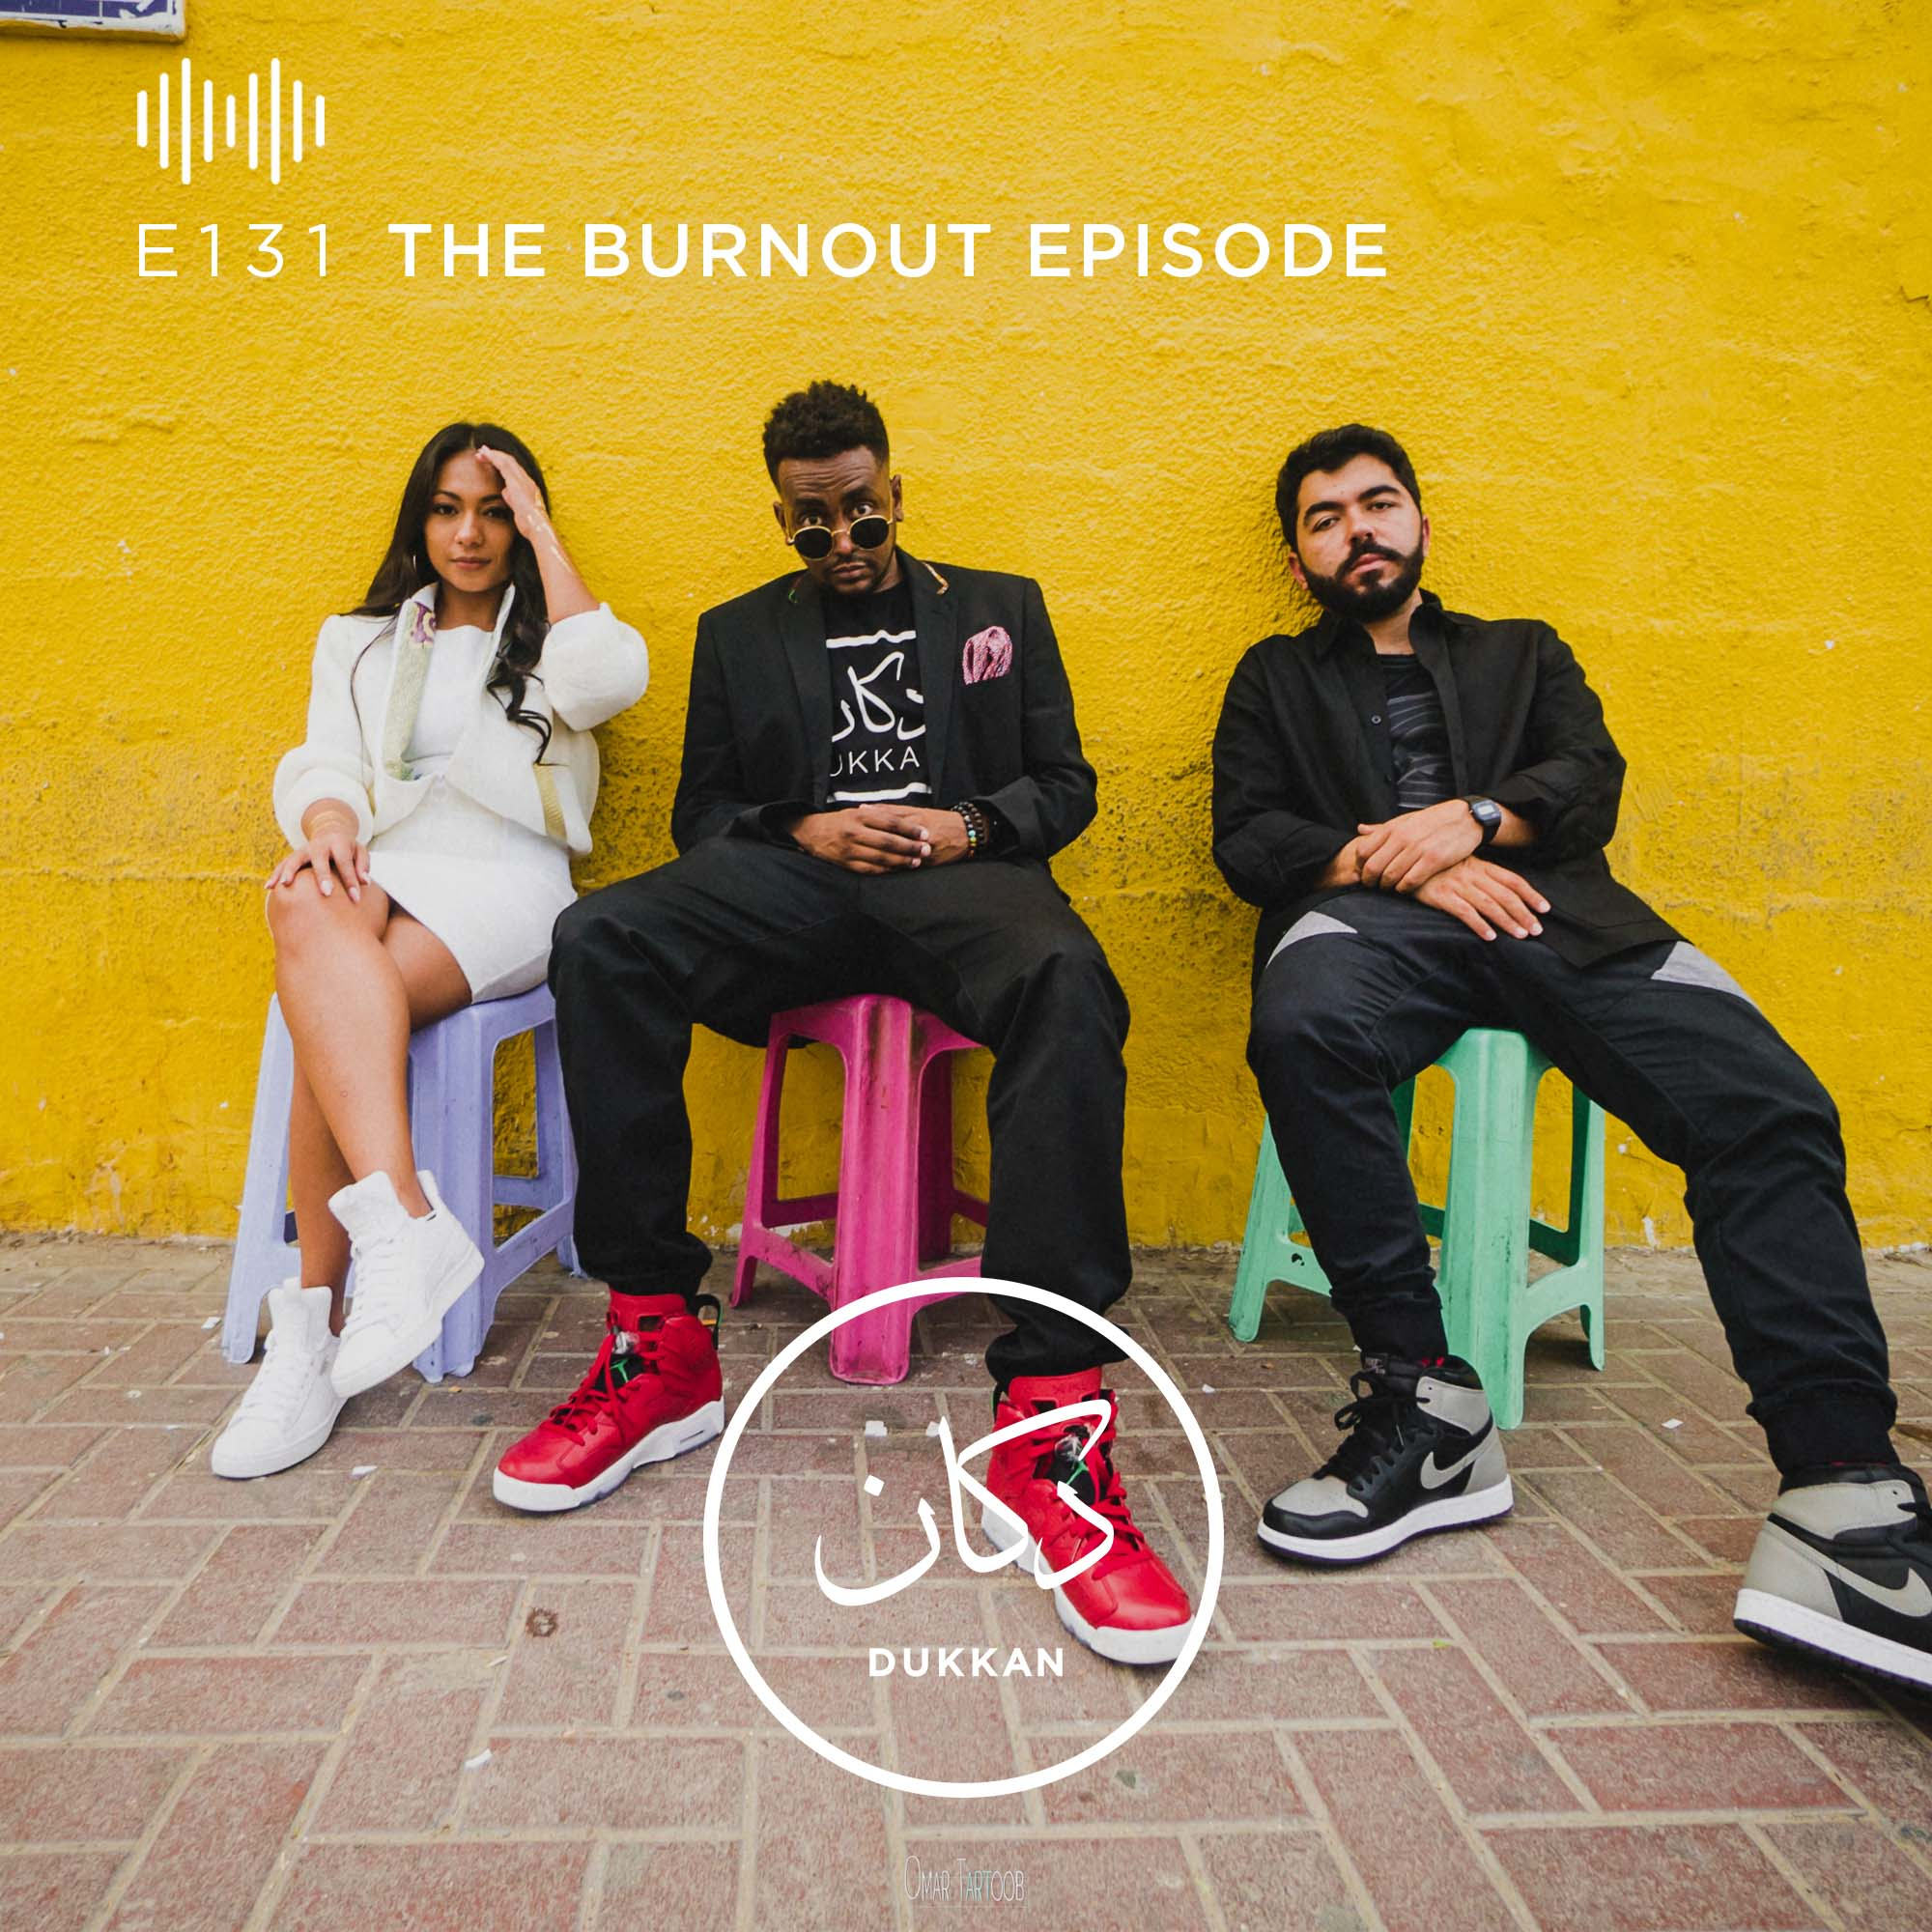 E131: The Burnout Episode